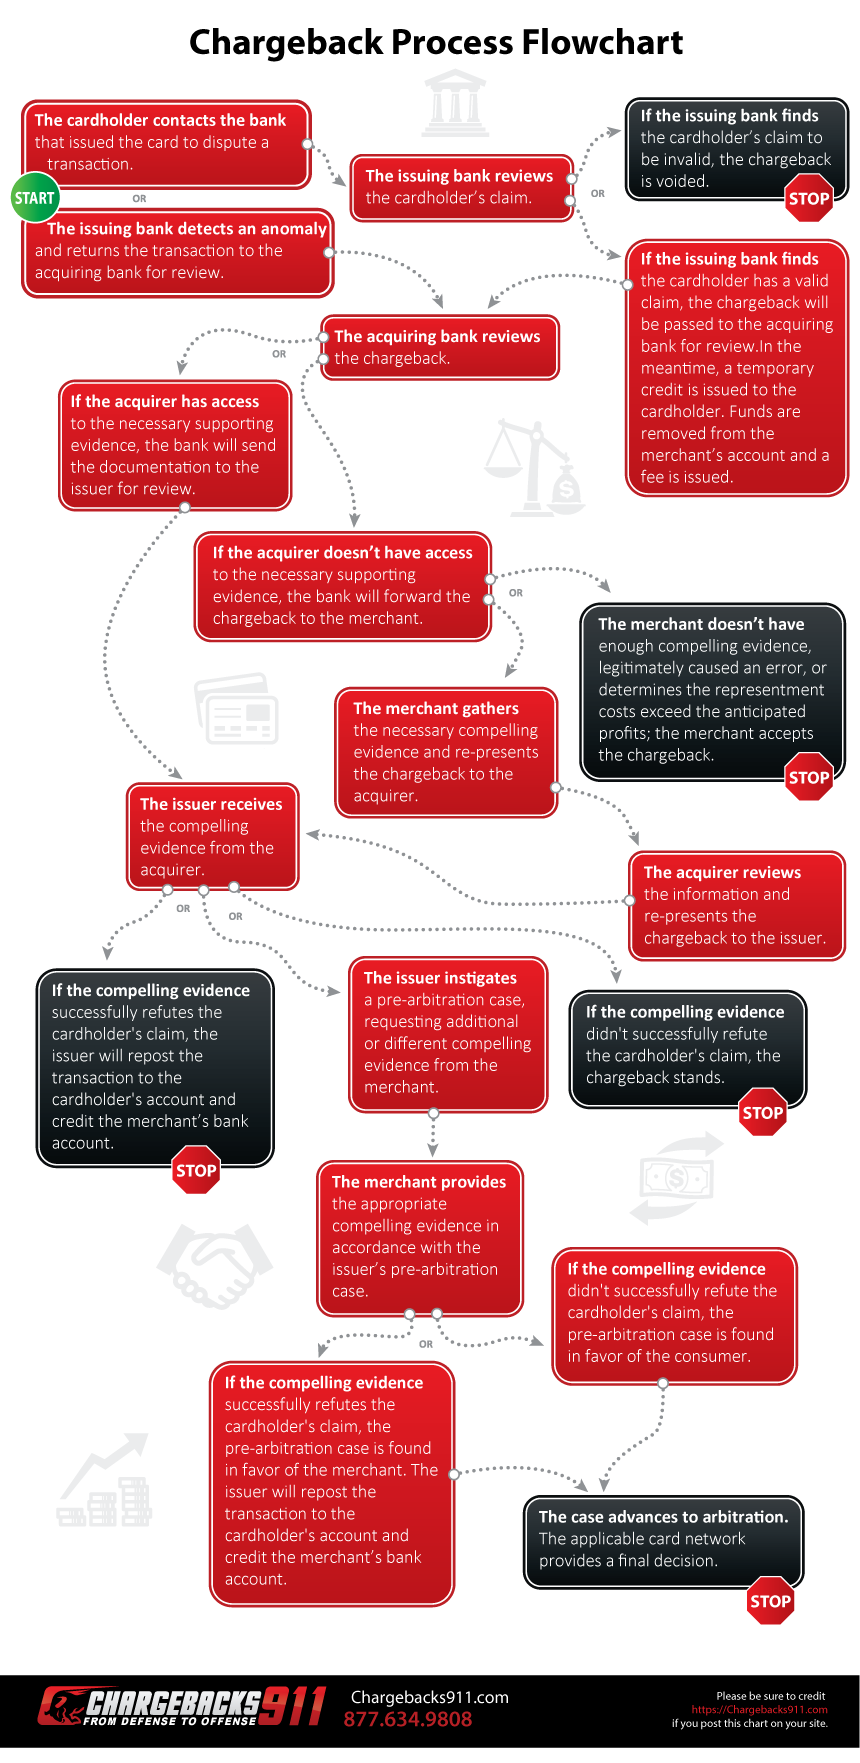 Chargeback-process-flow-chart